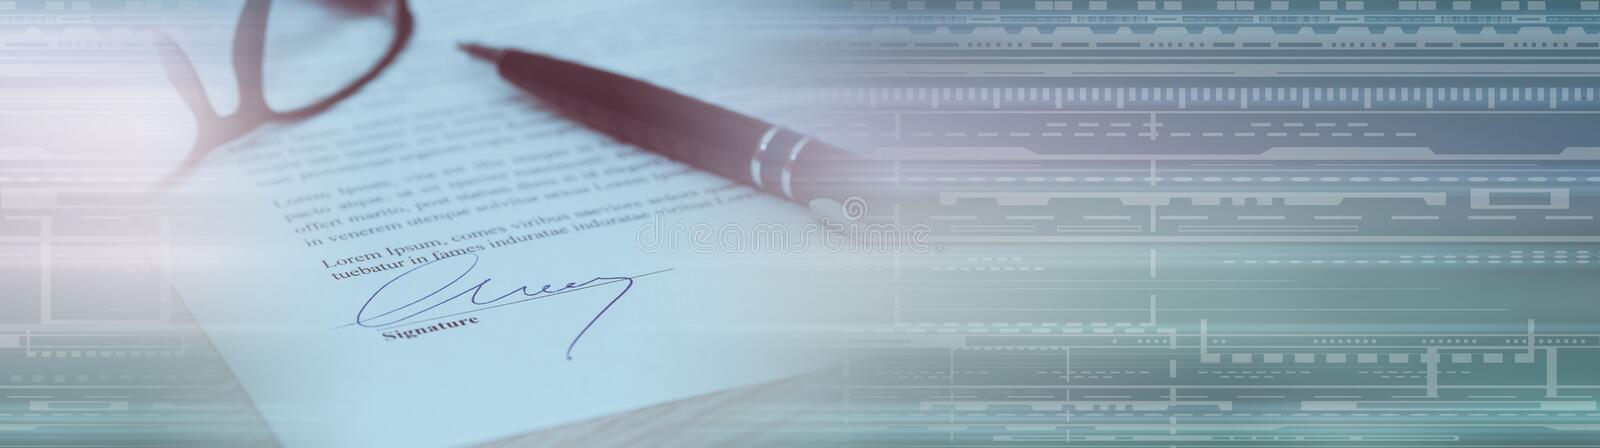 Closeup of signed contract; panoramic banner royalty free stock image